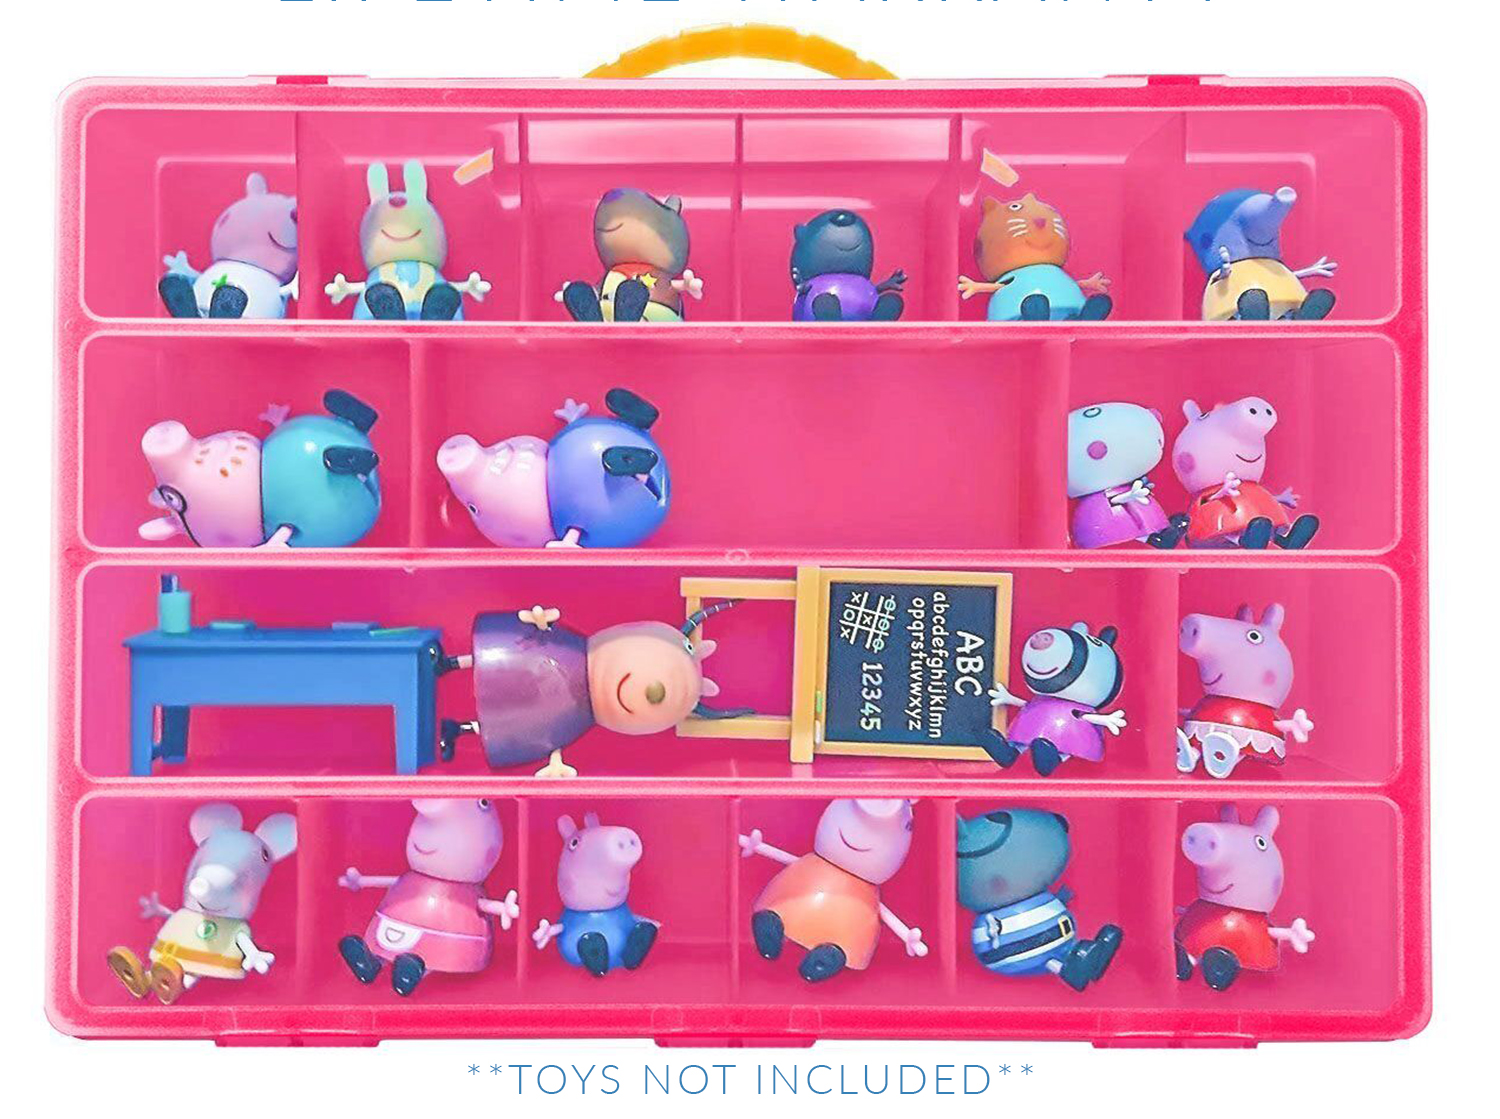 Paw Patrol Kids Toy Organizer Bin Children S Storage Box: Peppa Pig Case, Toy Storage Carrying Box. Figures Playset